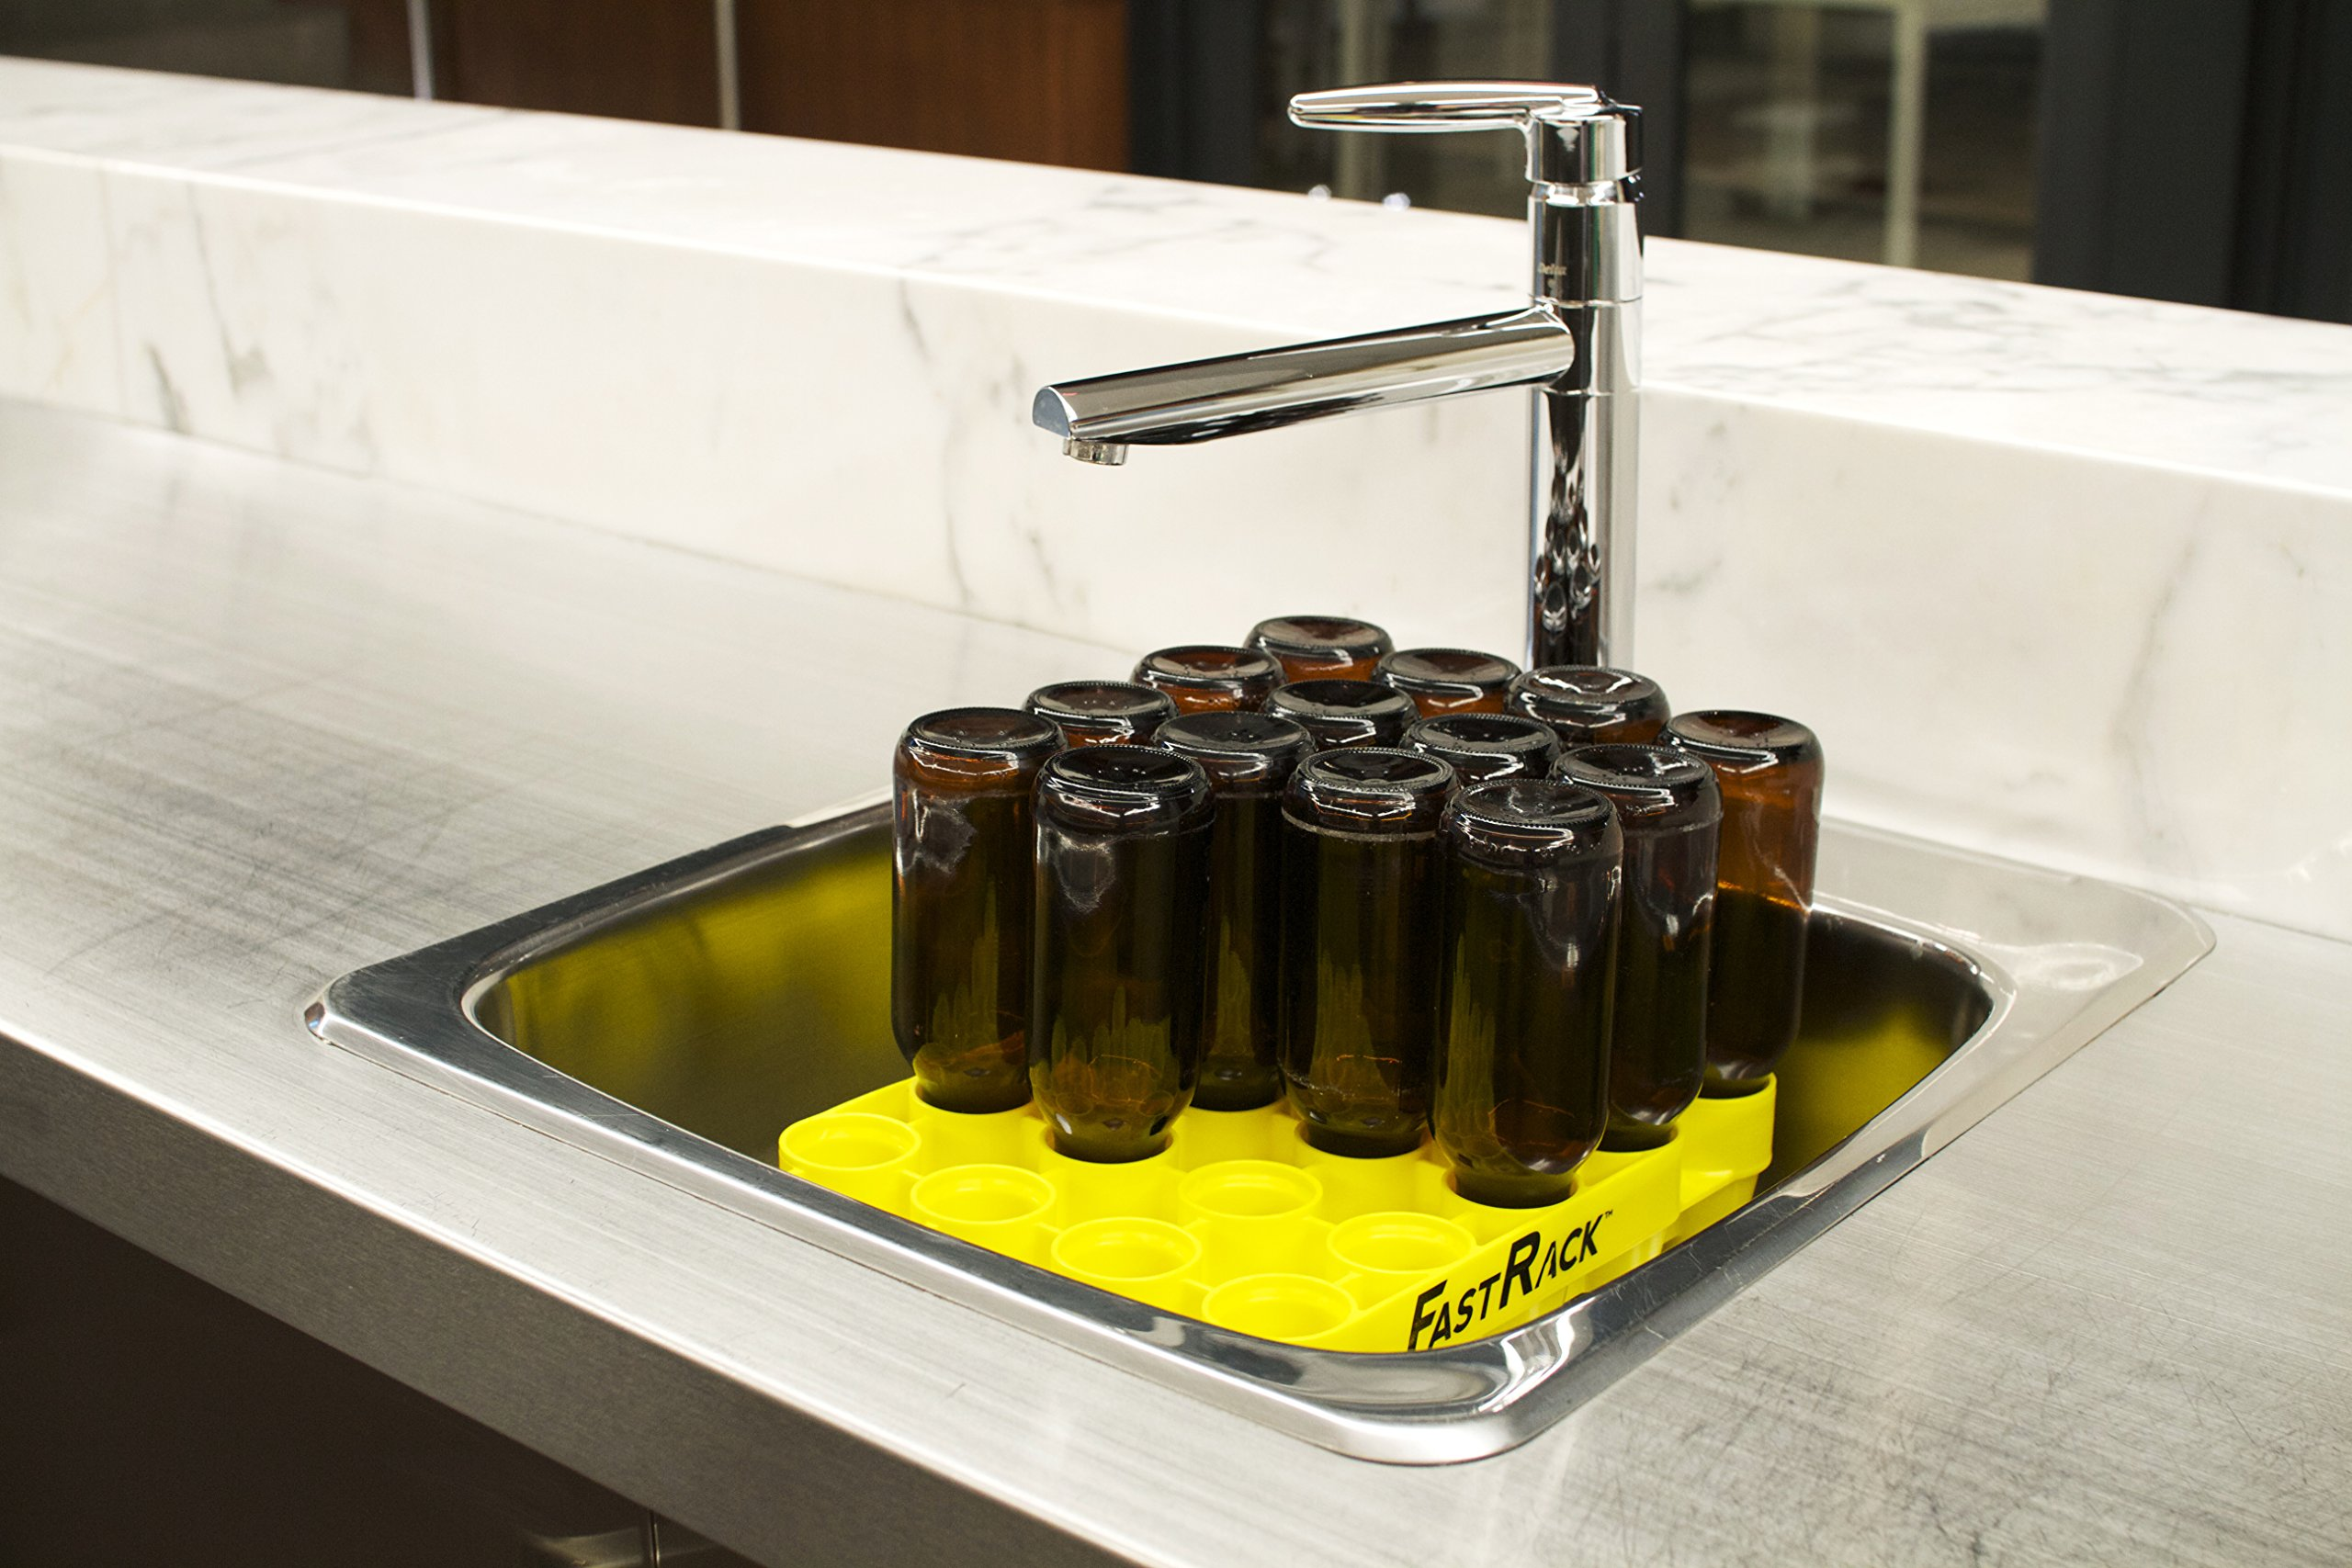 FastRack Bottle Drying Rack & Tray Kit - Bottle Drying Tree alternative; Dry or Store your Beer, Wine or Bomber/Belgian Bottles; Add to your Home Brewing Supplies by Fastrack (Image #10)